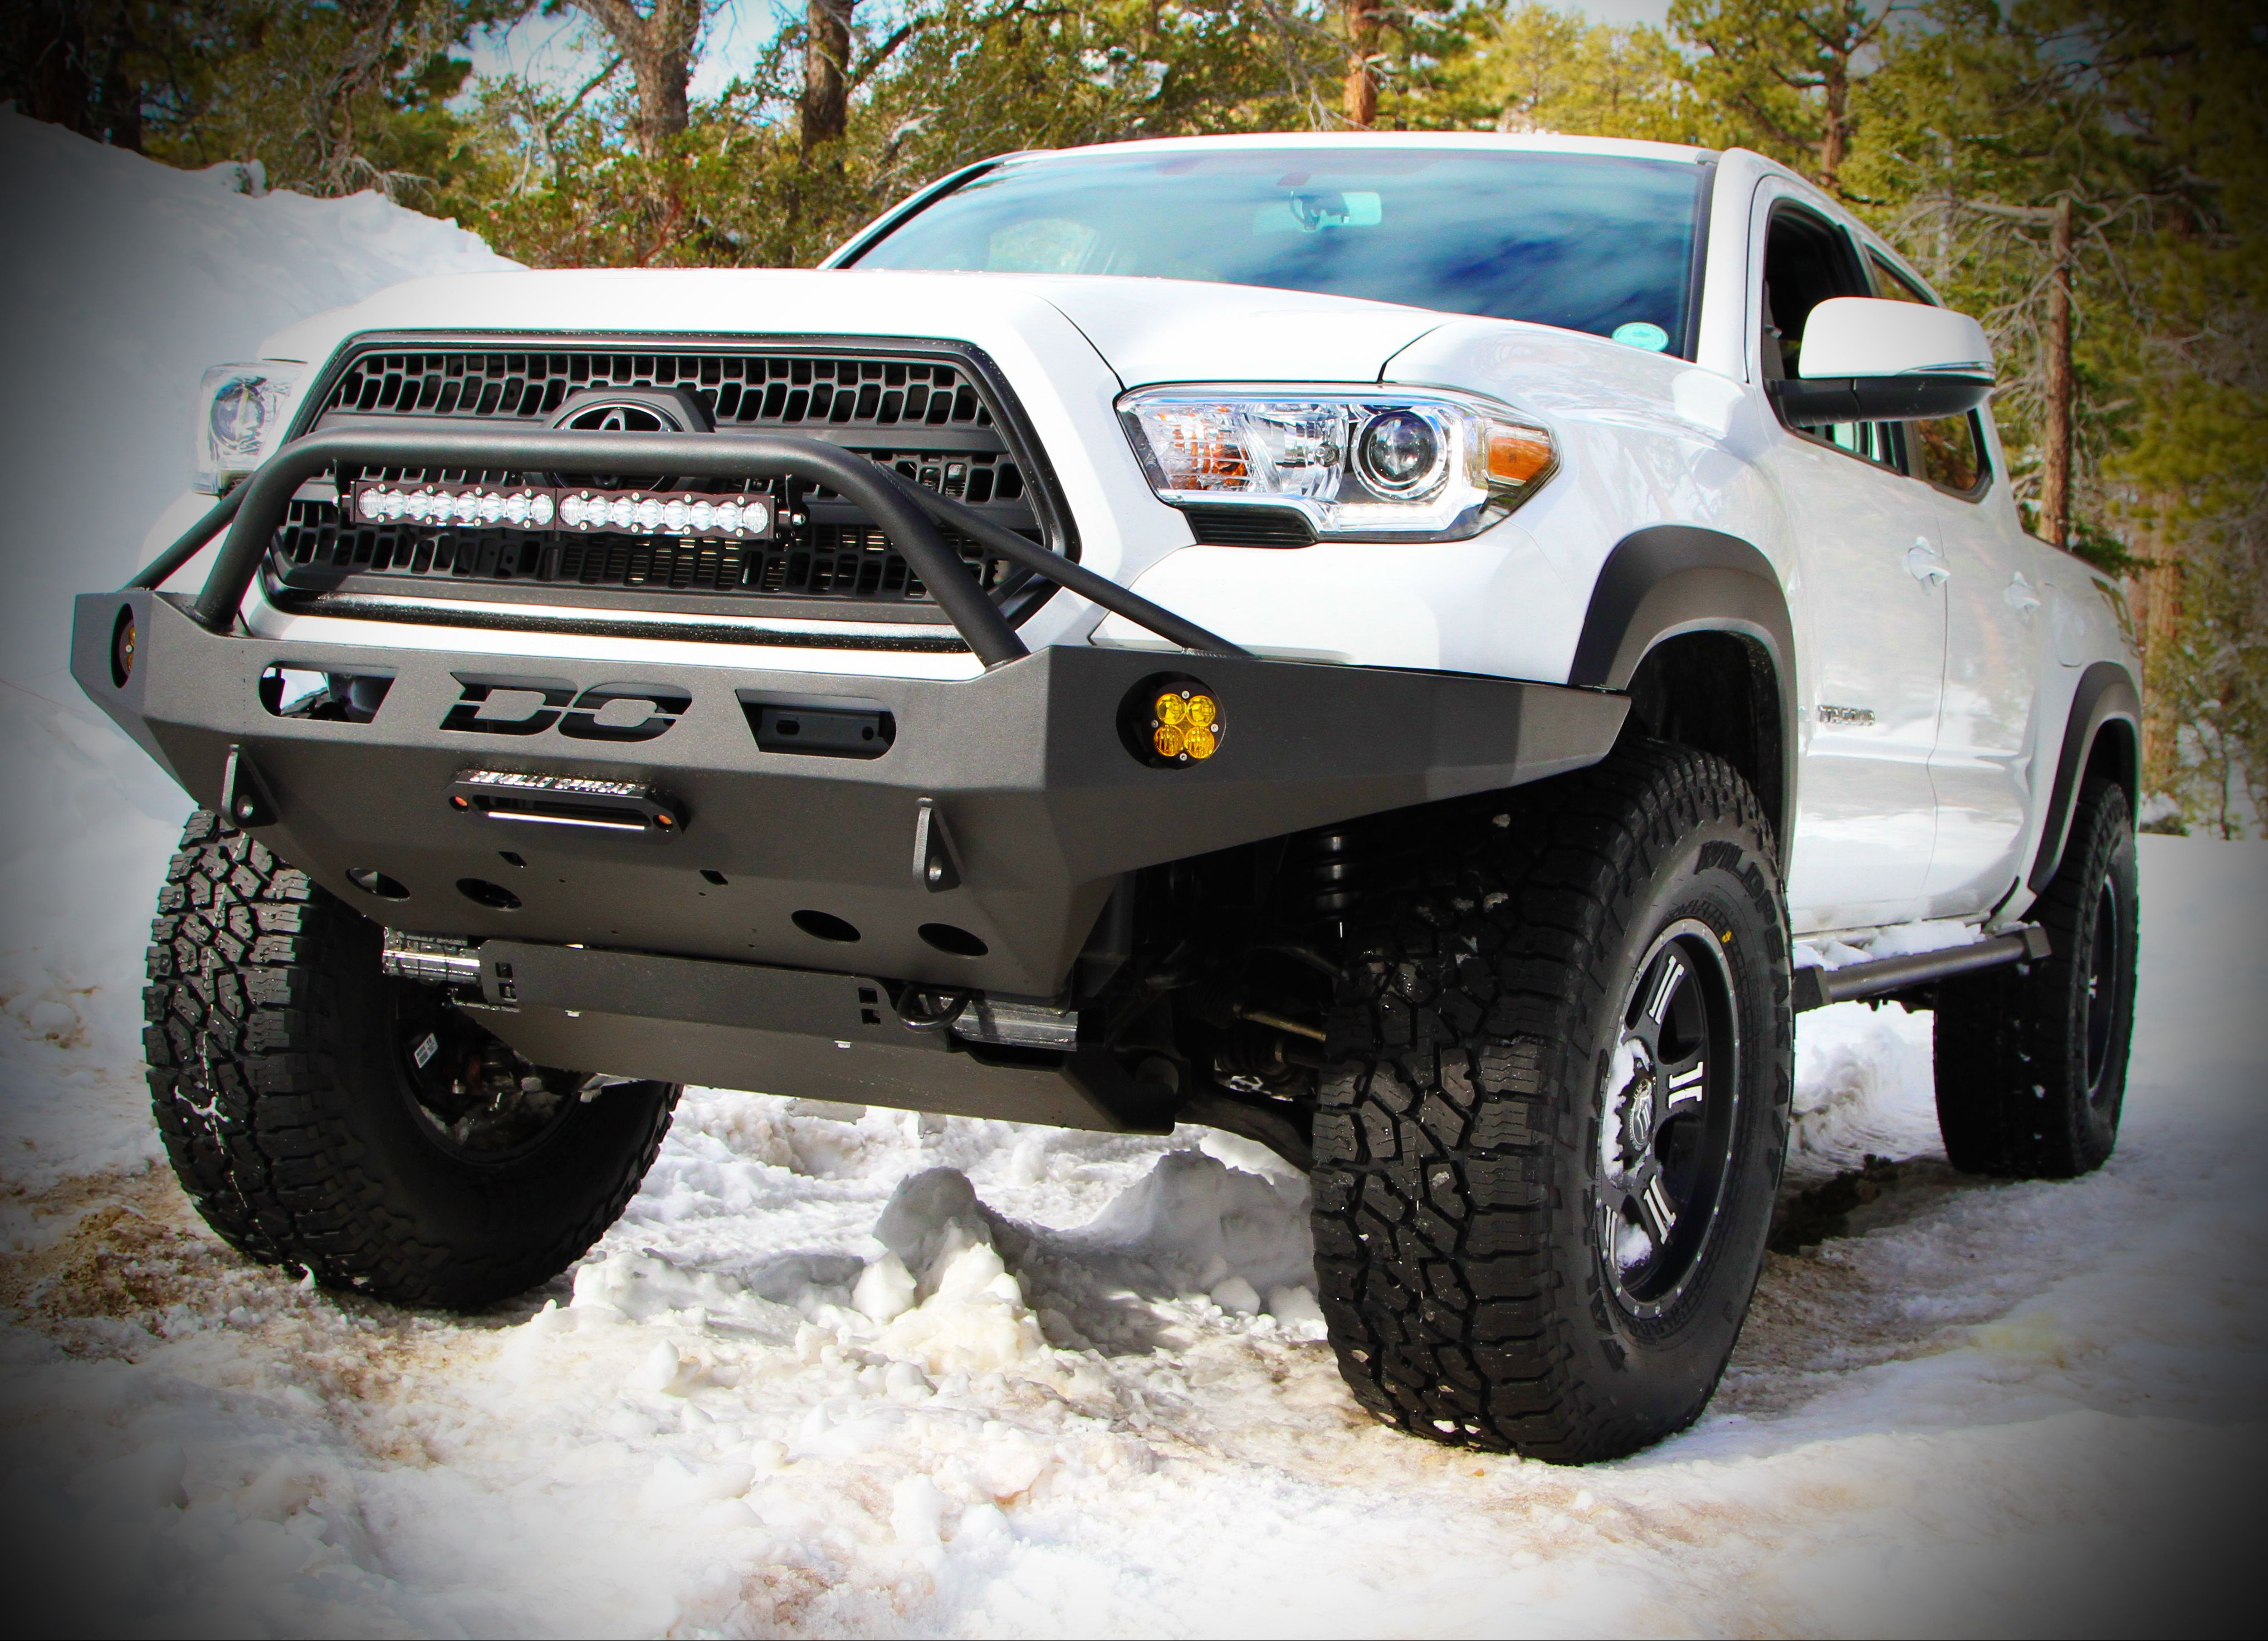 Bmw Of Little Rock >> Demello Off Road Rock Sliders Toyota Tundra Off Road | Autos Post